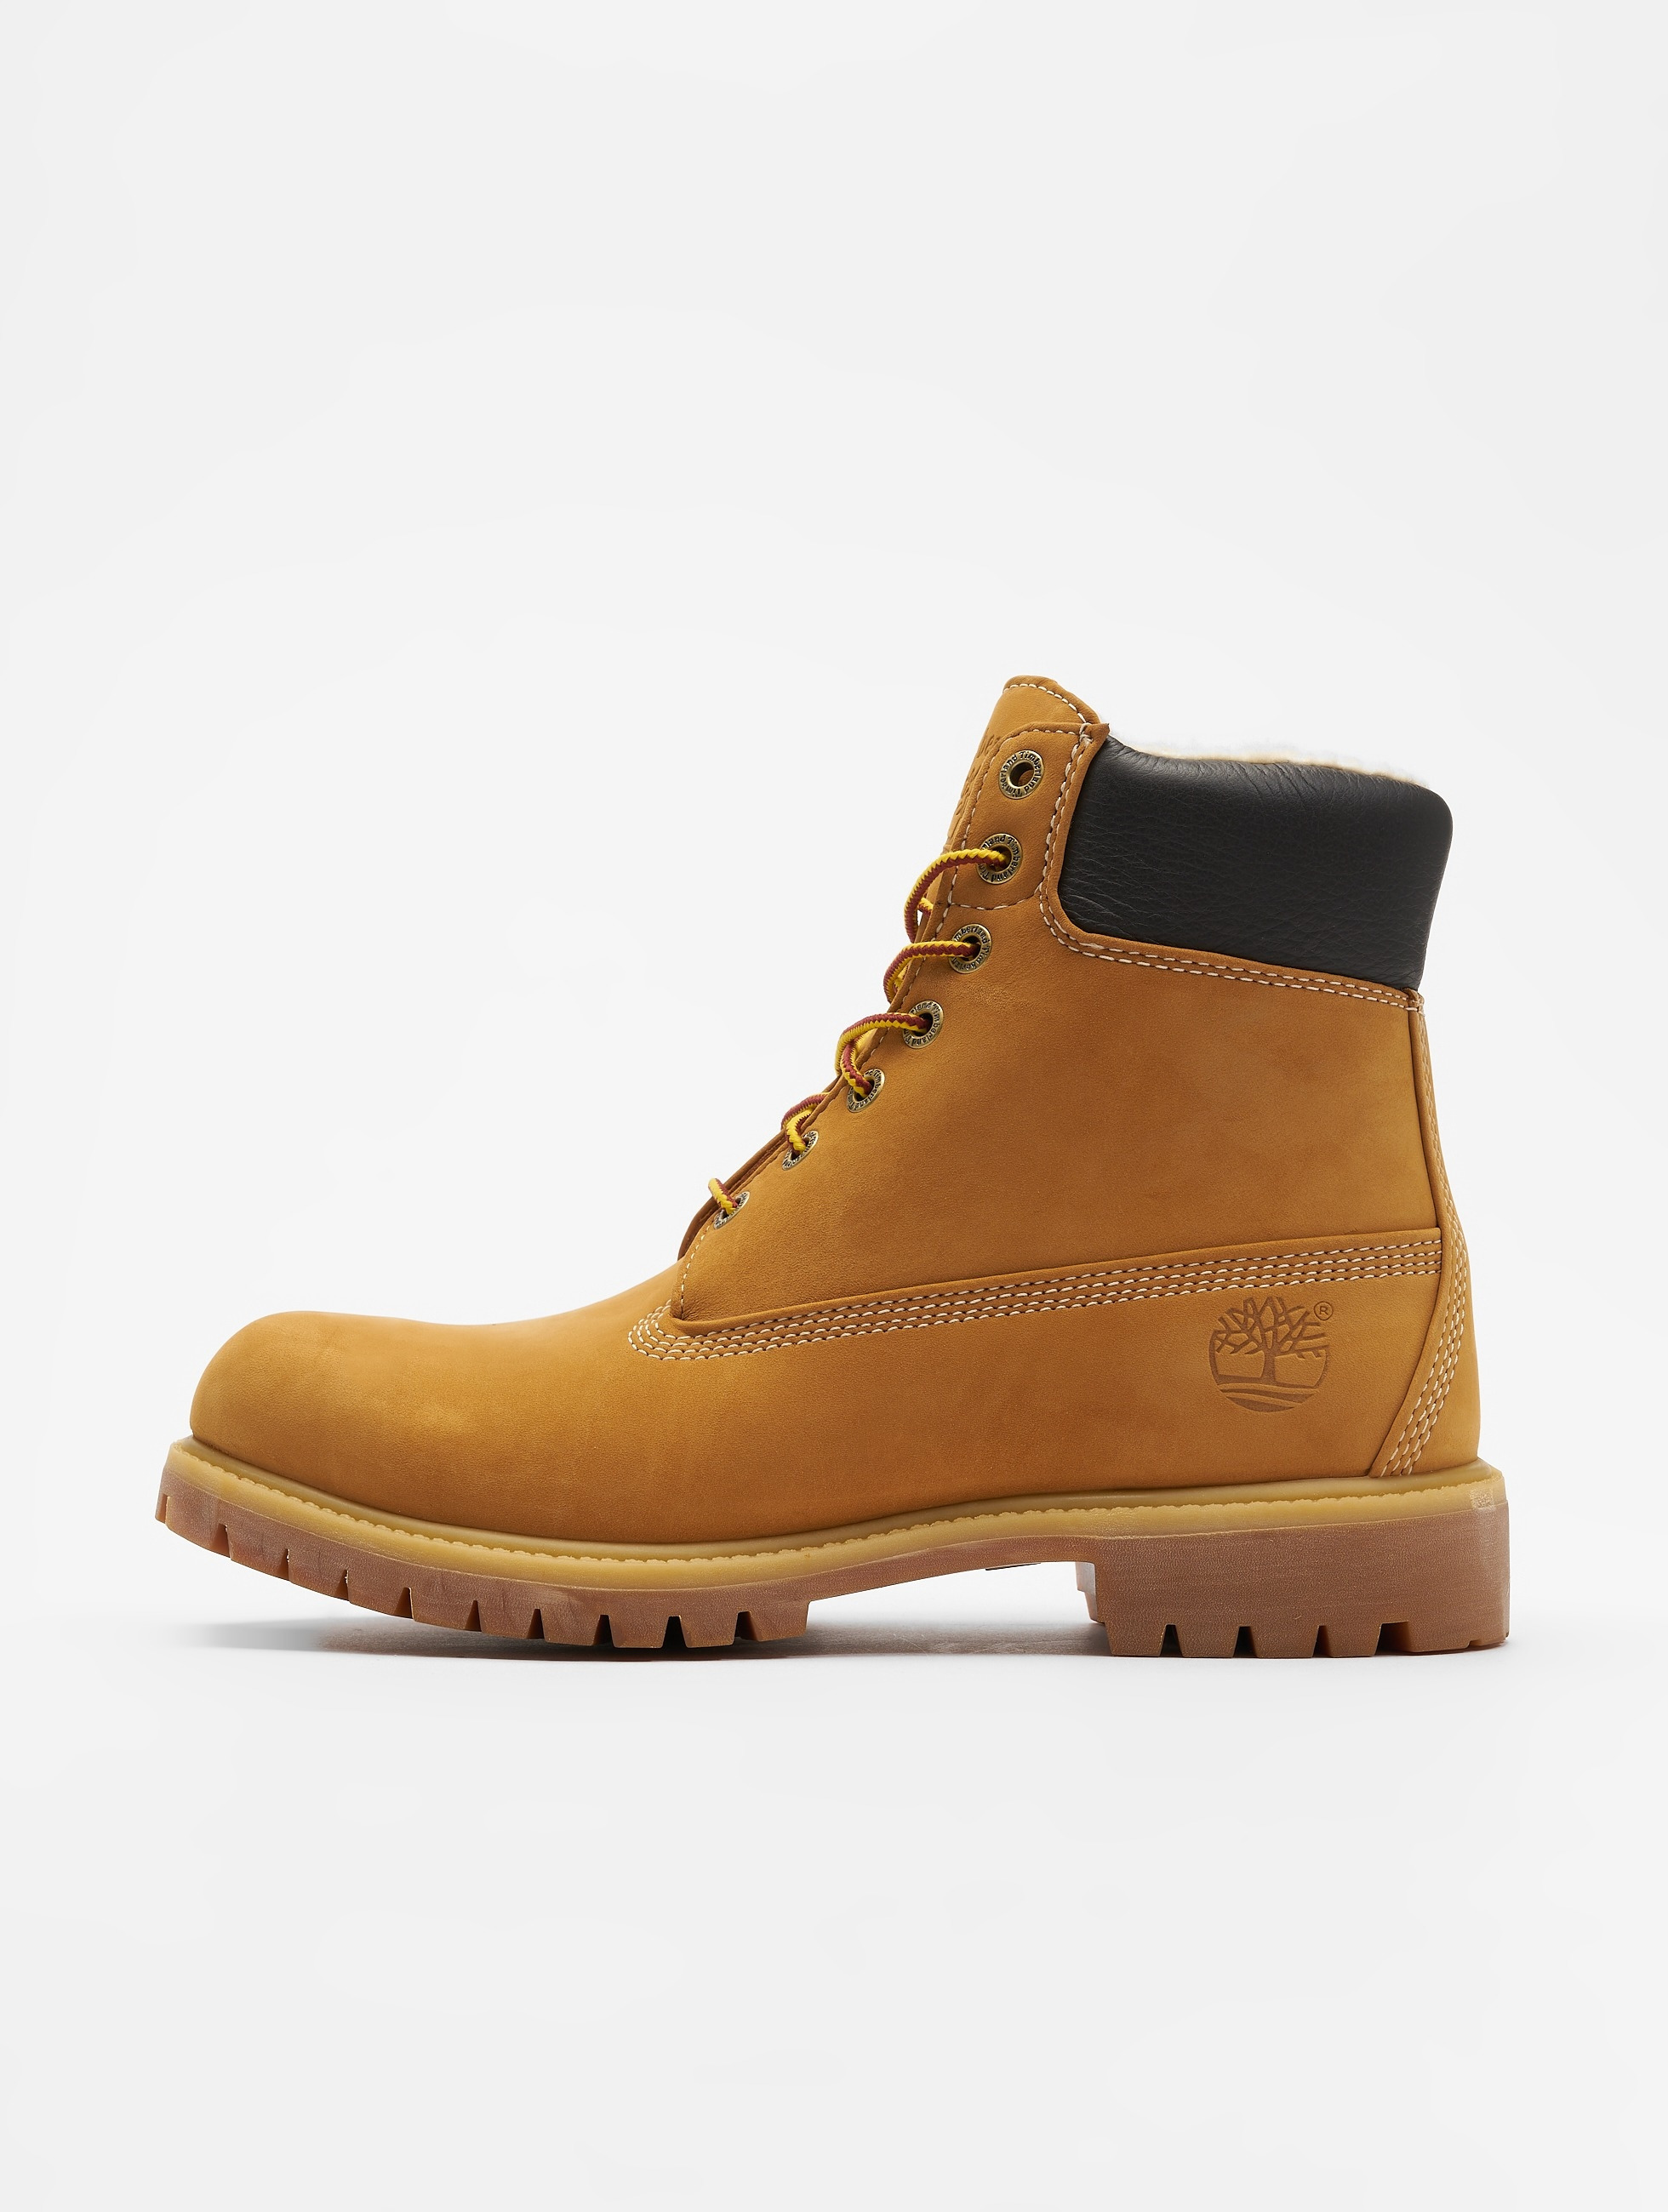 Timberland Heritage 6 Inch Warm Lined Boots Wheat Sale Angebote Döbern